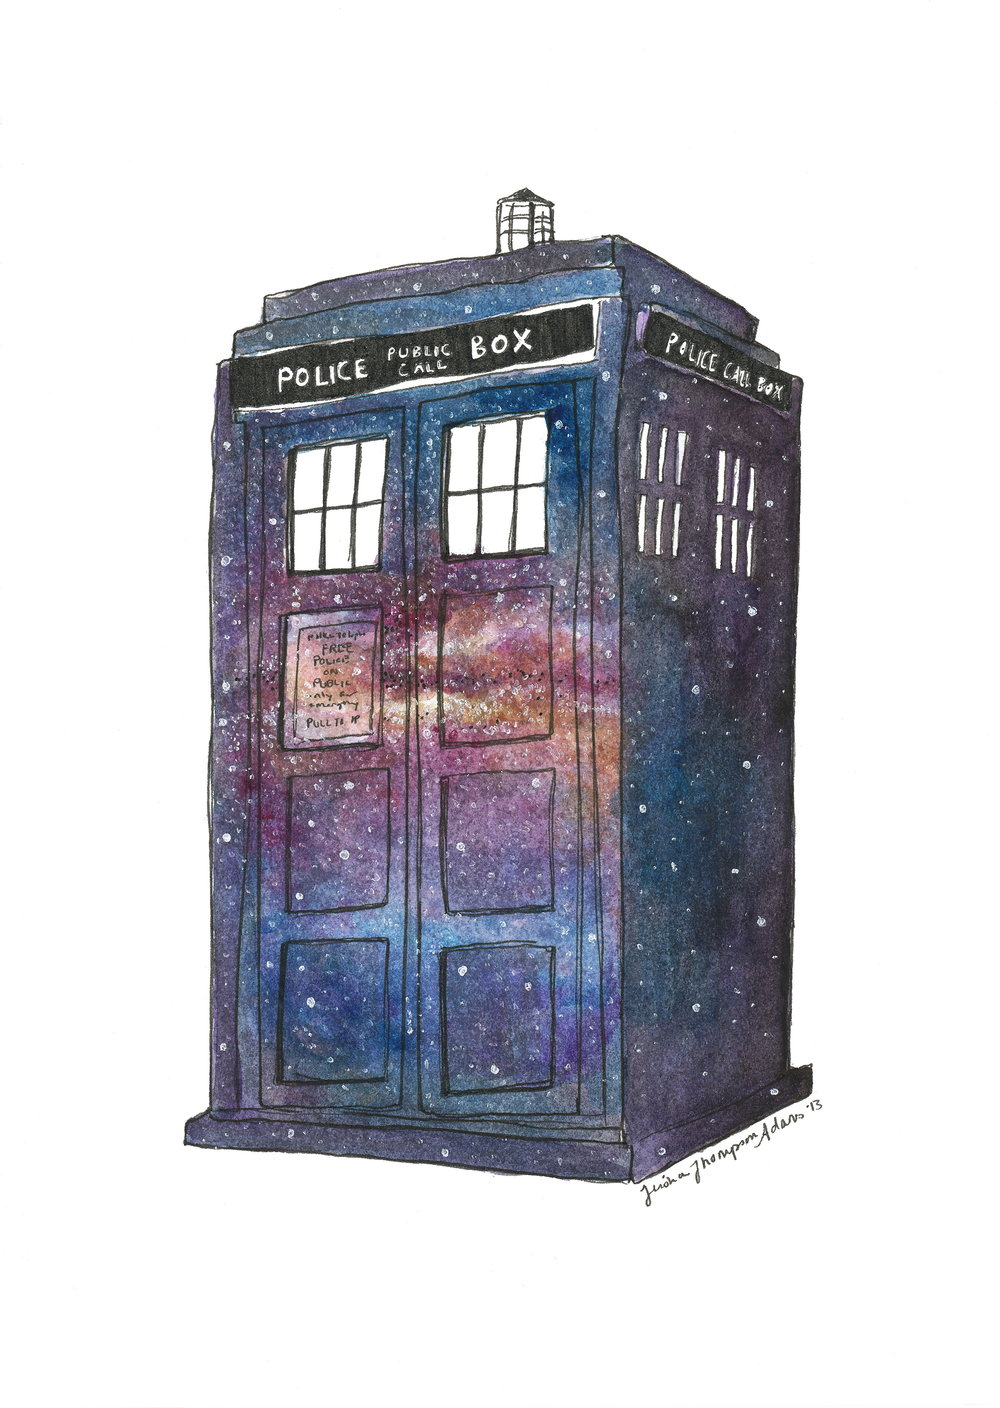 Galaxy Tardis (ITEM NO: 001)  Print Size: 8x10 inches   $12.50 Wholesale at 50% off  $25 RRP